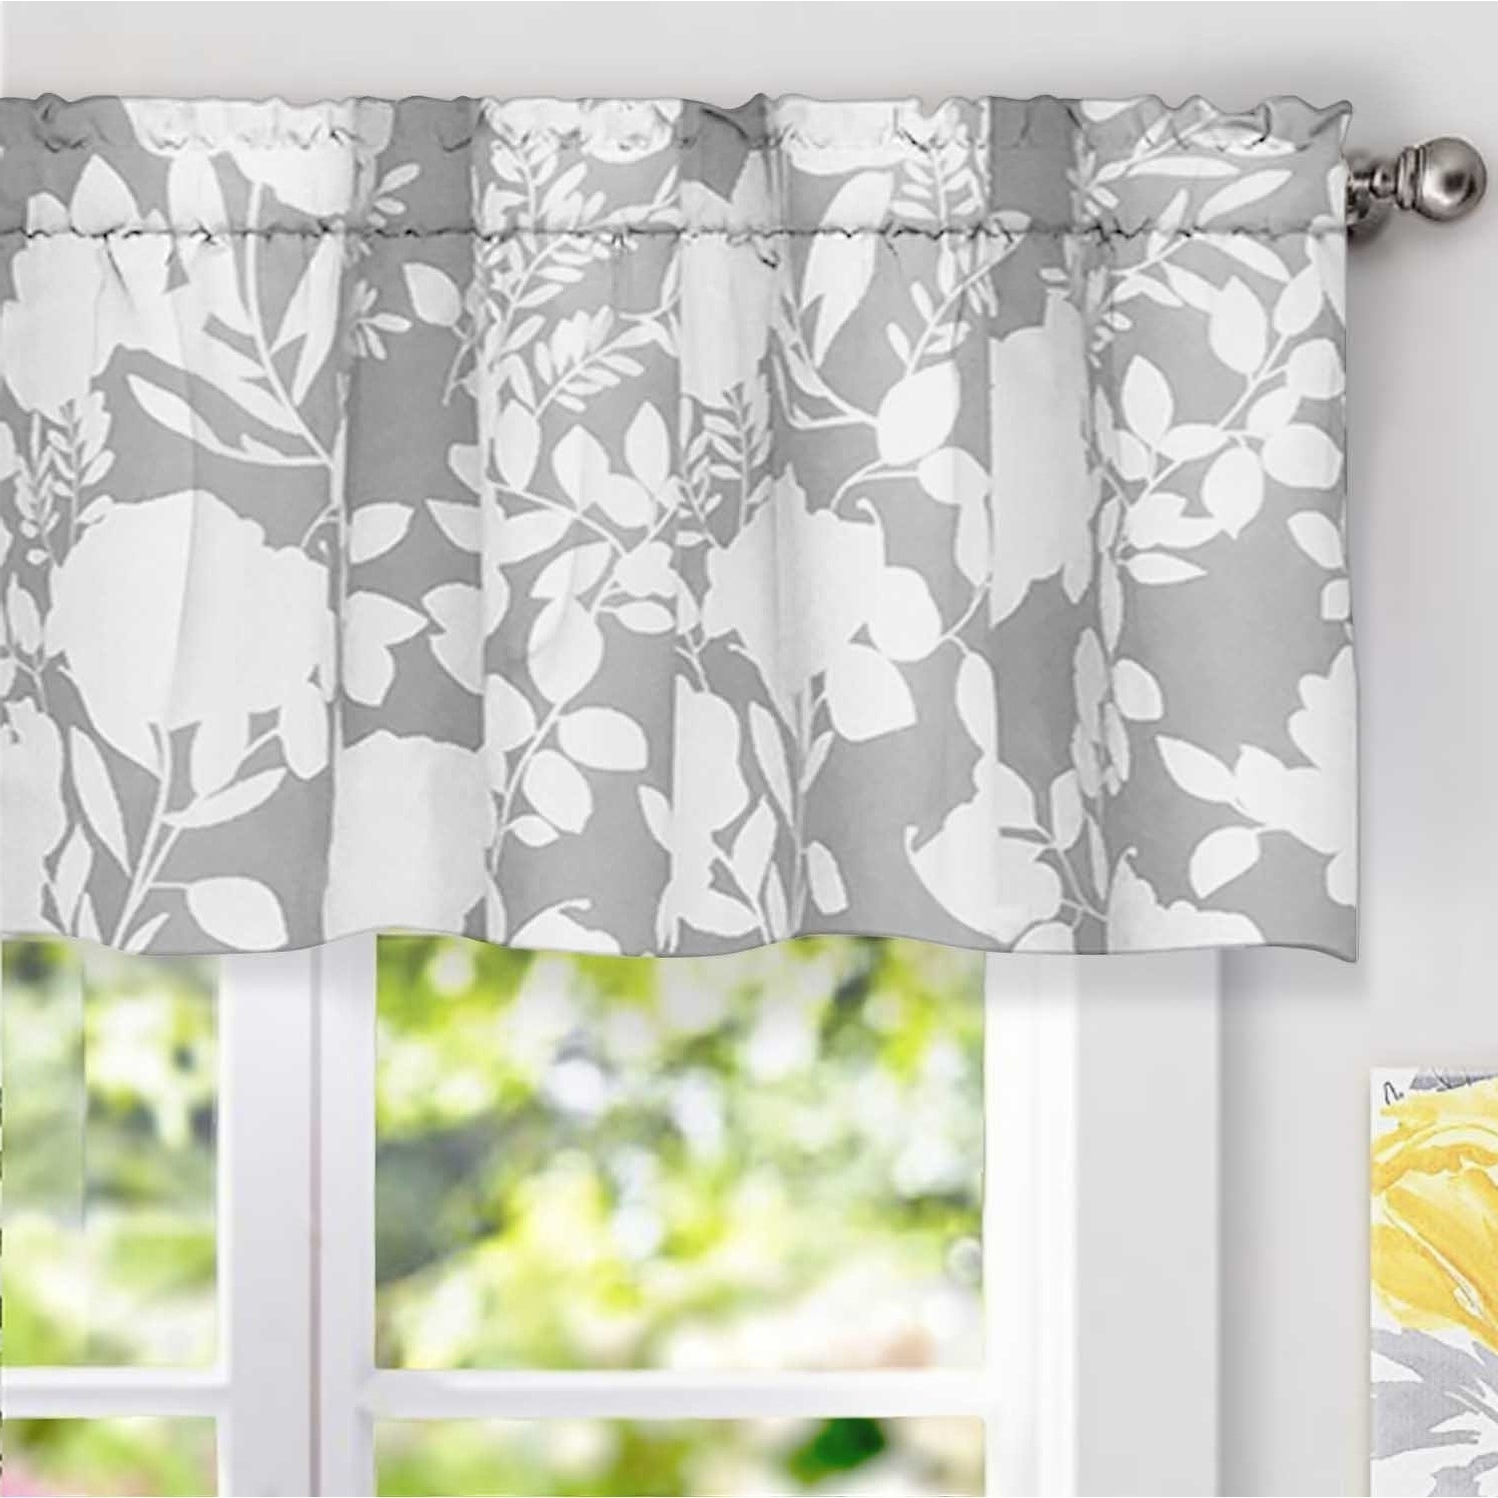 Details About Driftaway Floral Delight Botanic Pattern Window Valance – 52 Within Current Floral Pattern Window Valances (View 6 of 20)